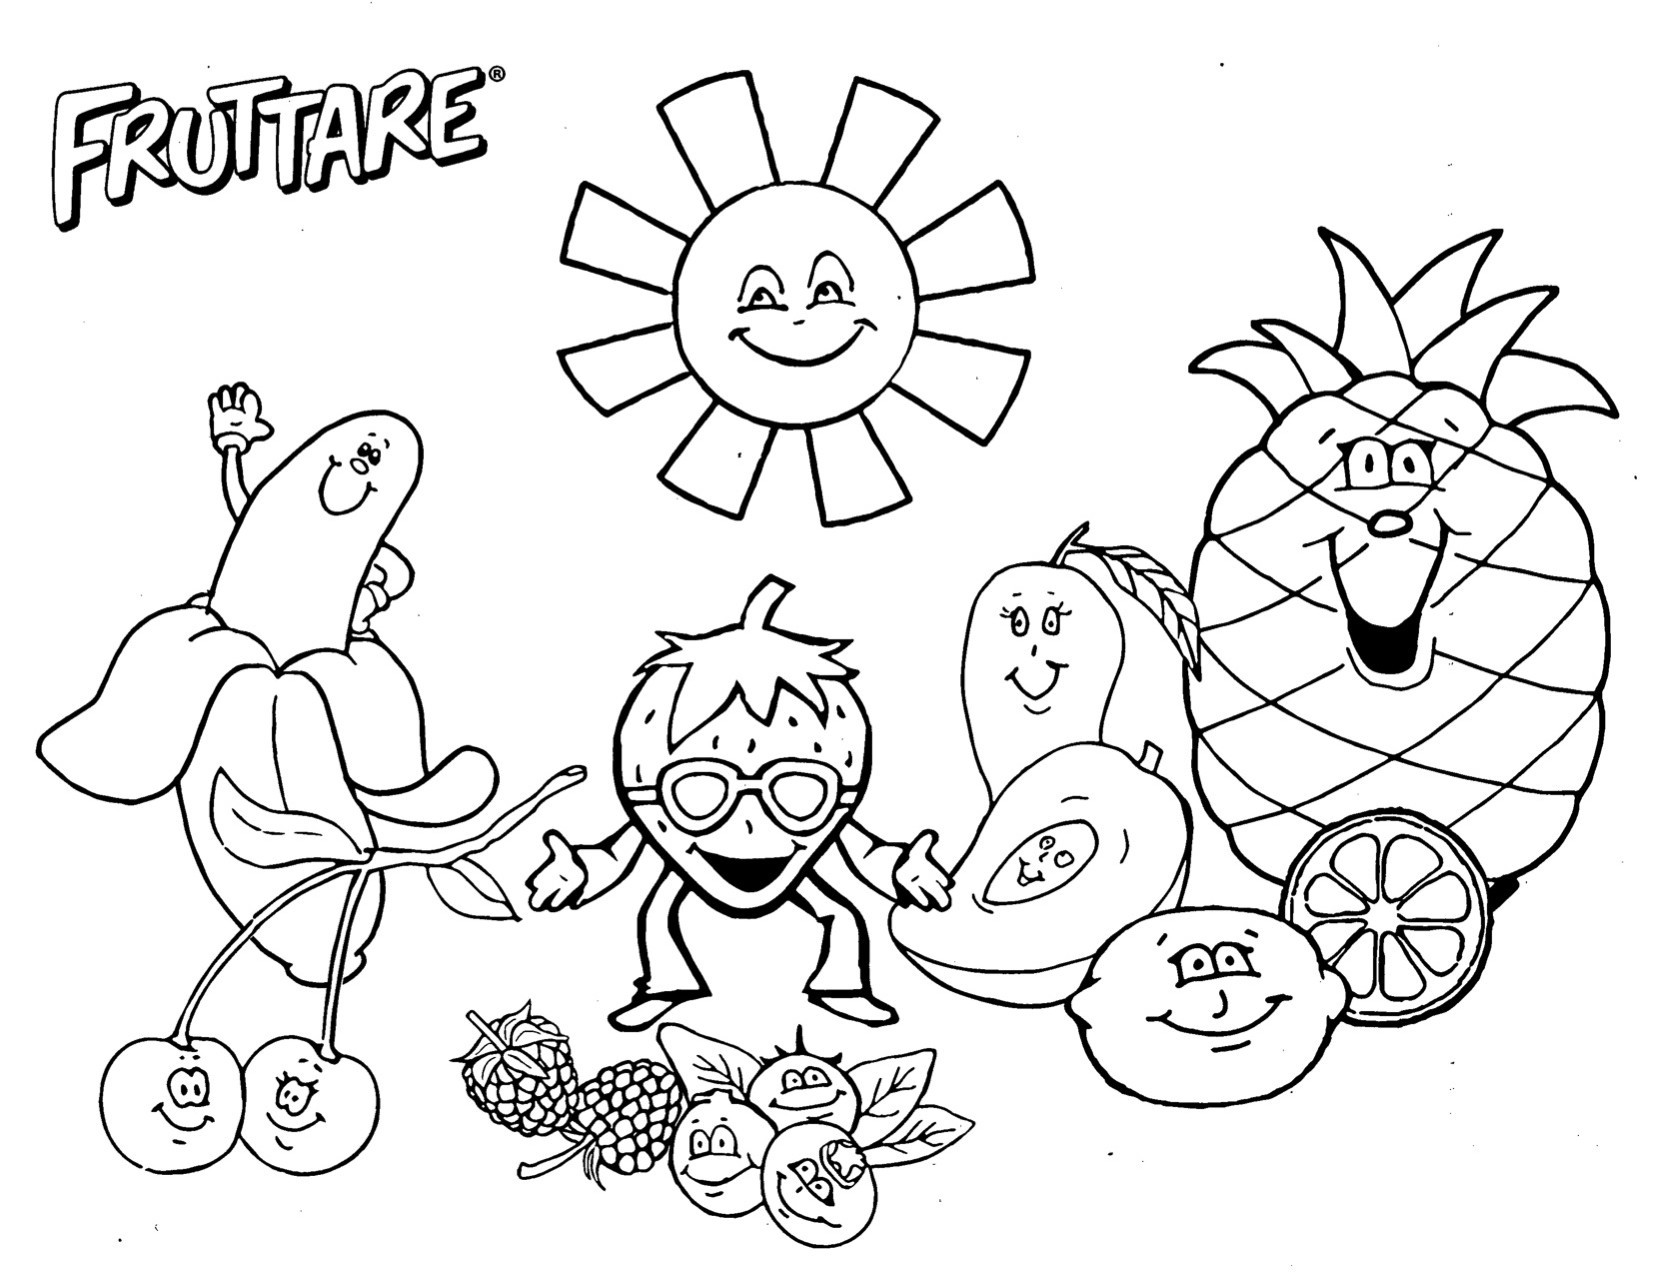 fruits images for coloring free printable fruit coloring pages for kids for images coloring fruits